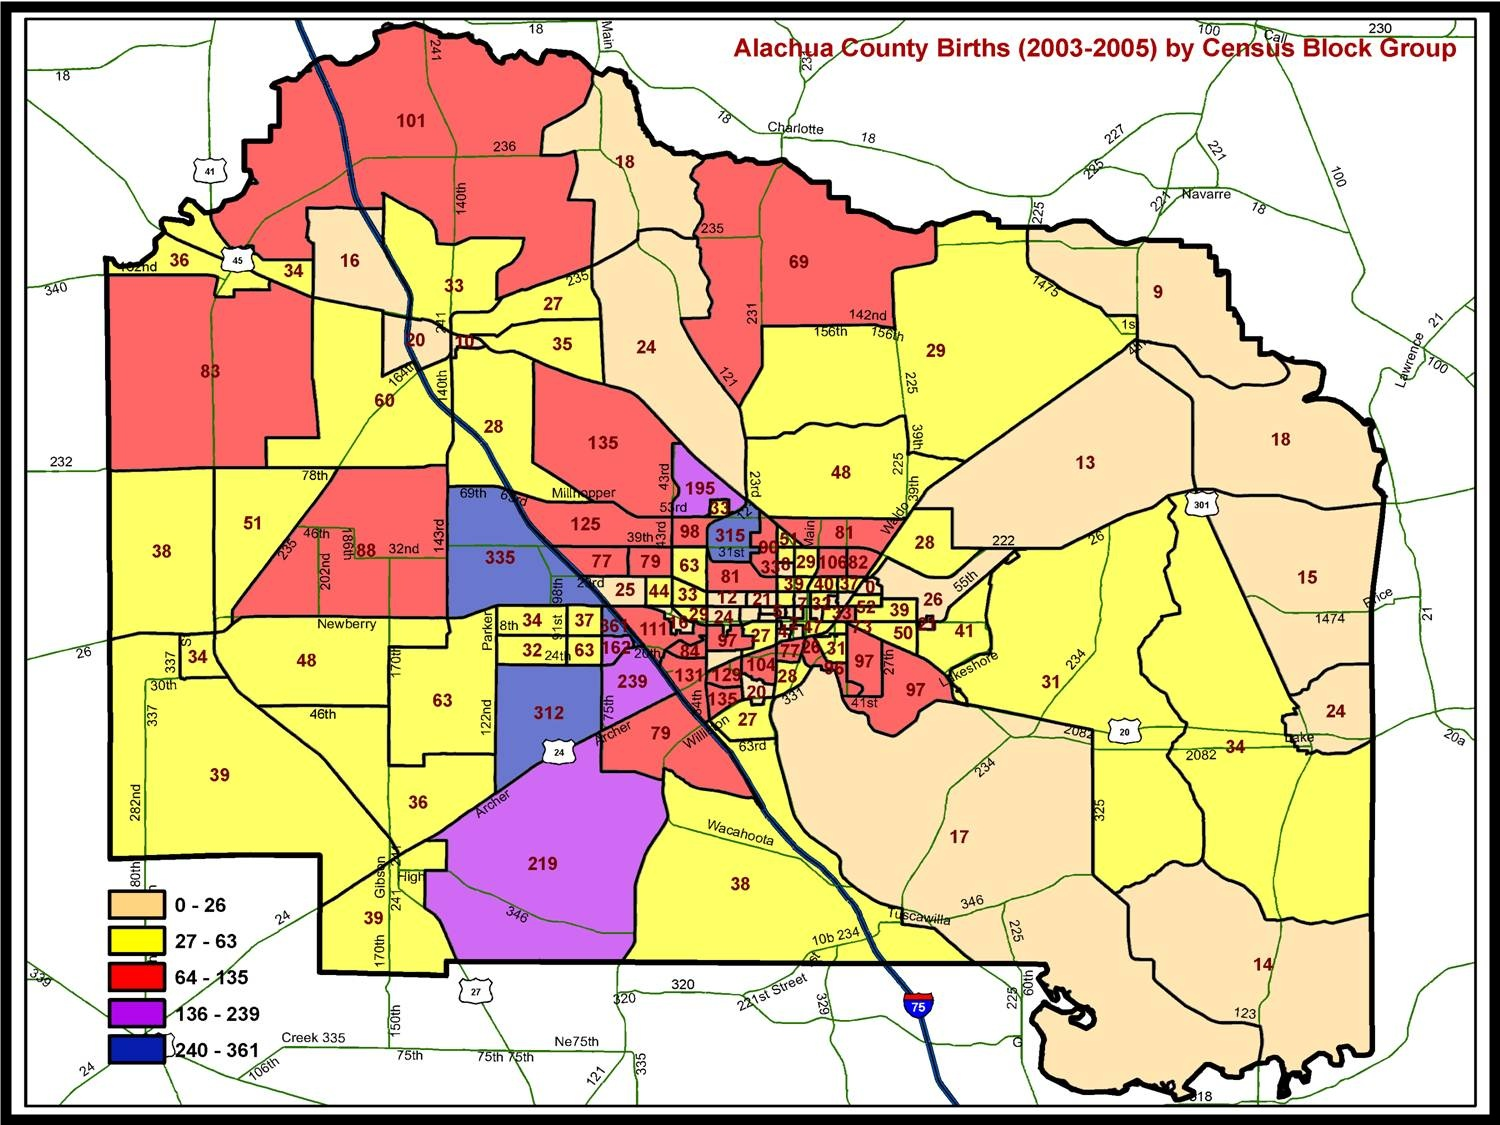 Duval County Florida Zip Code Map Pictures to Pin on Pinterest PinsDaddy